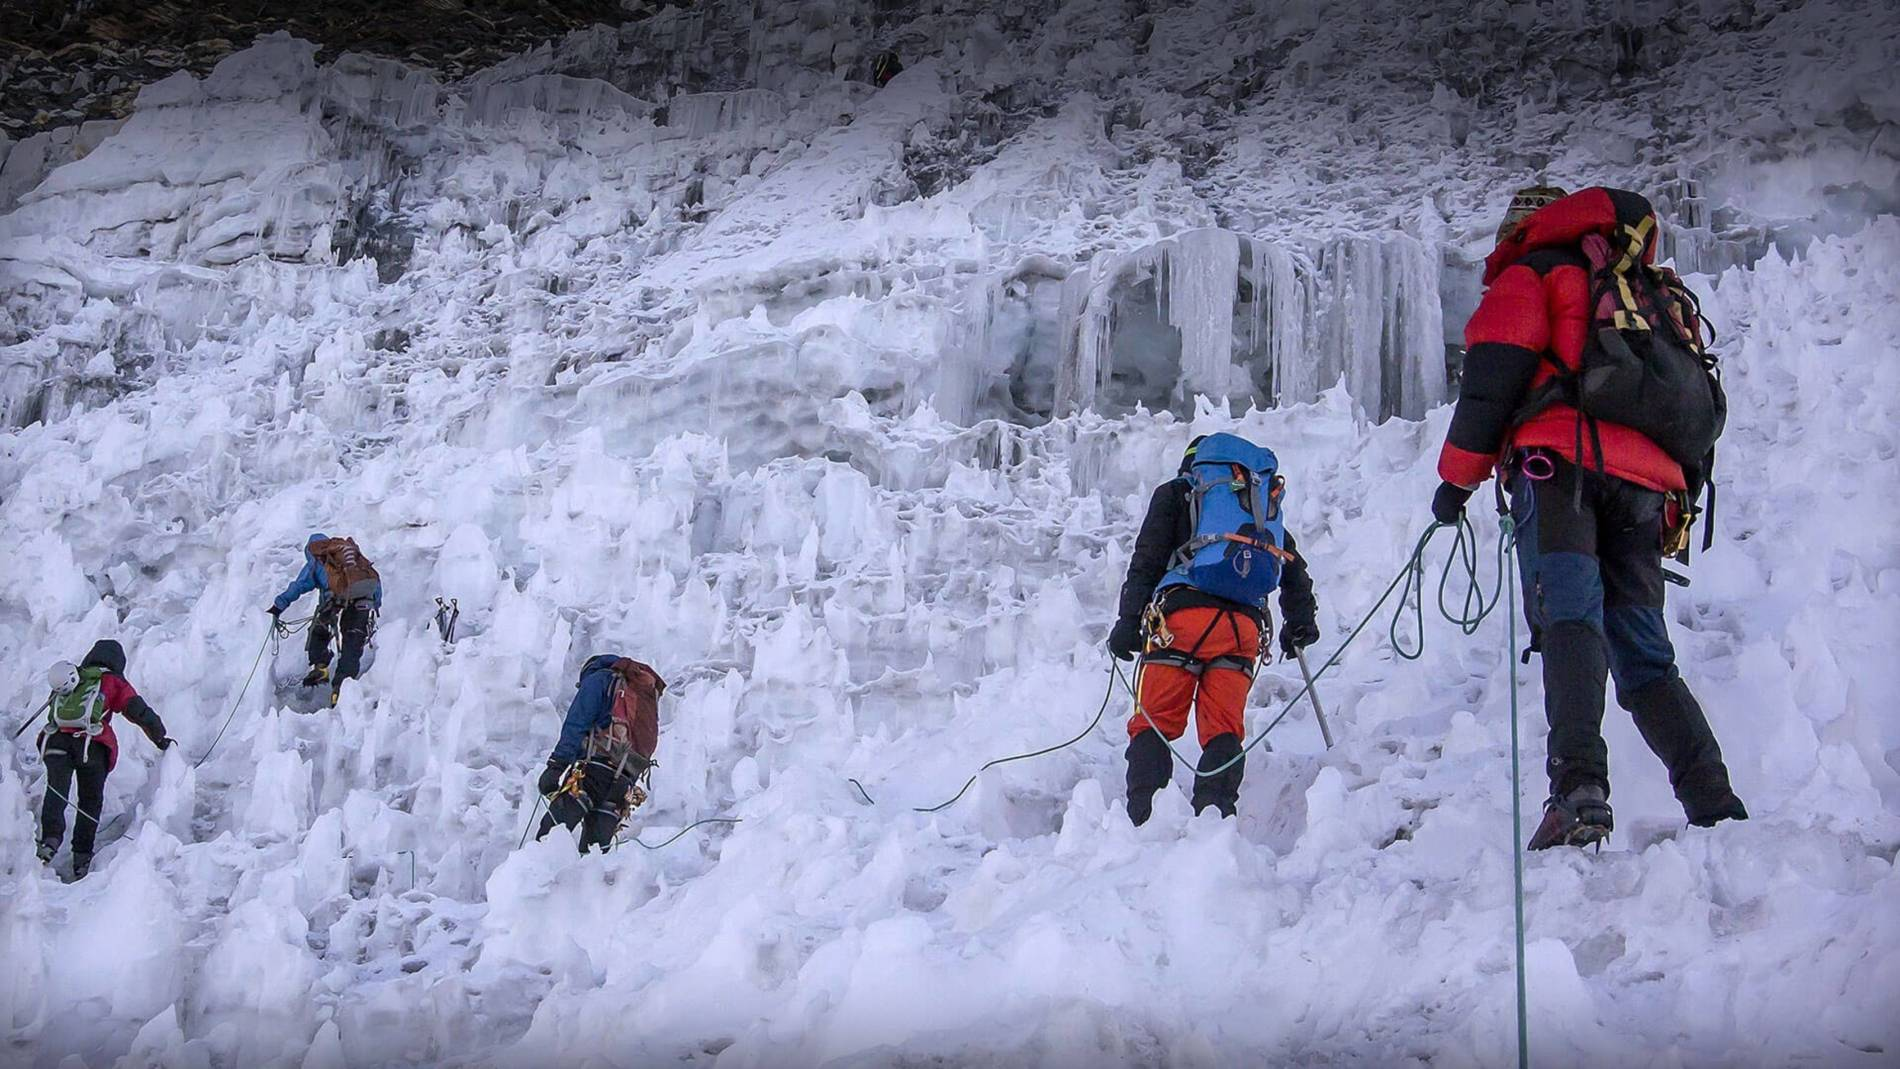 Island peak climbing: Island Peak Expedition 2020/2021